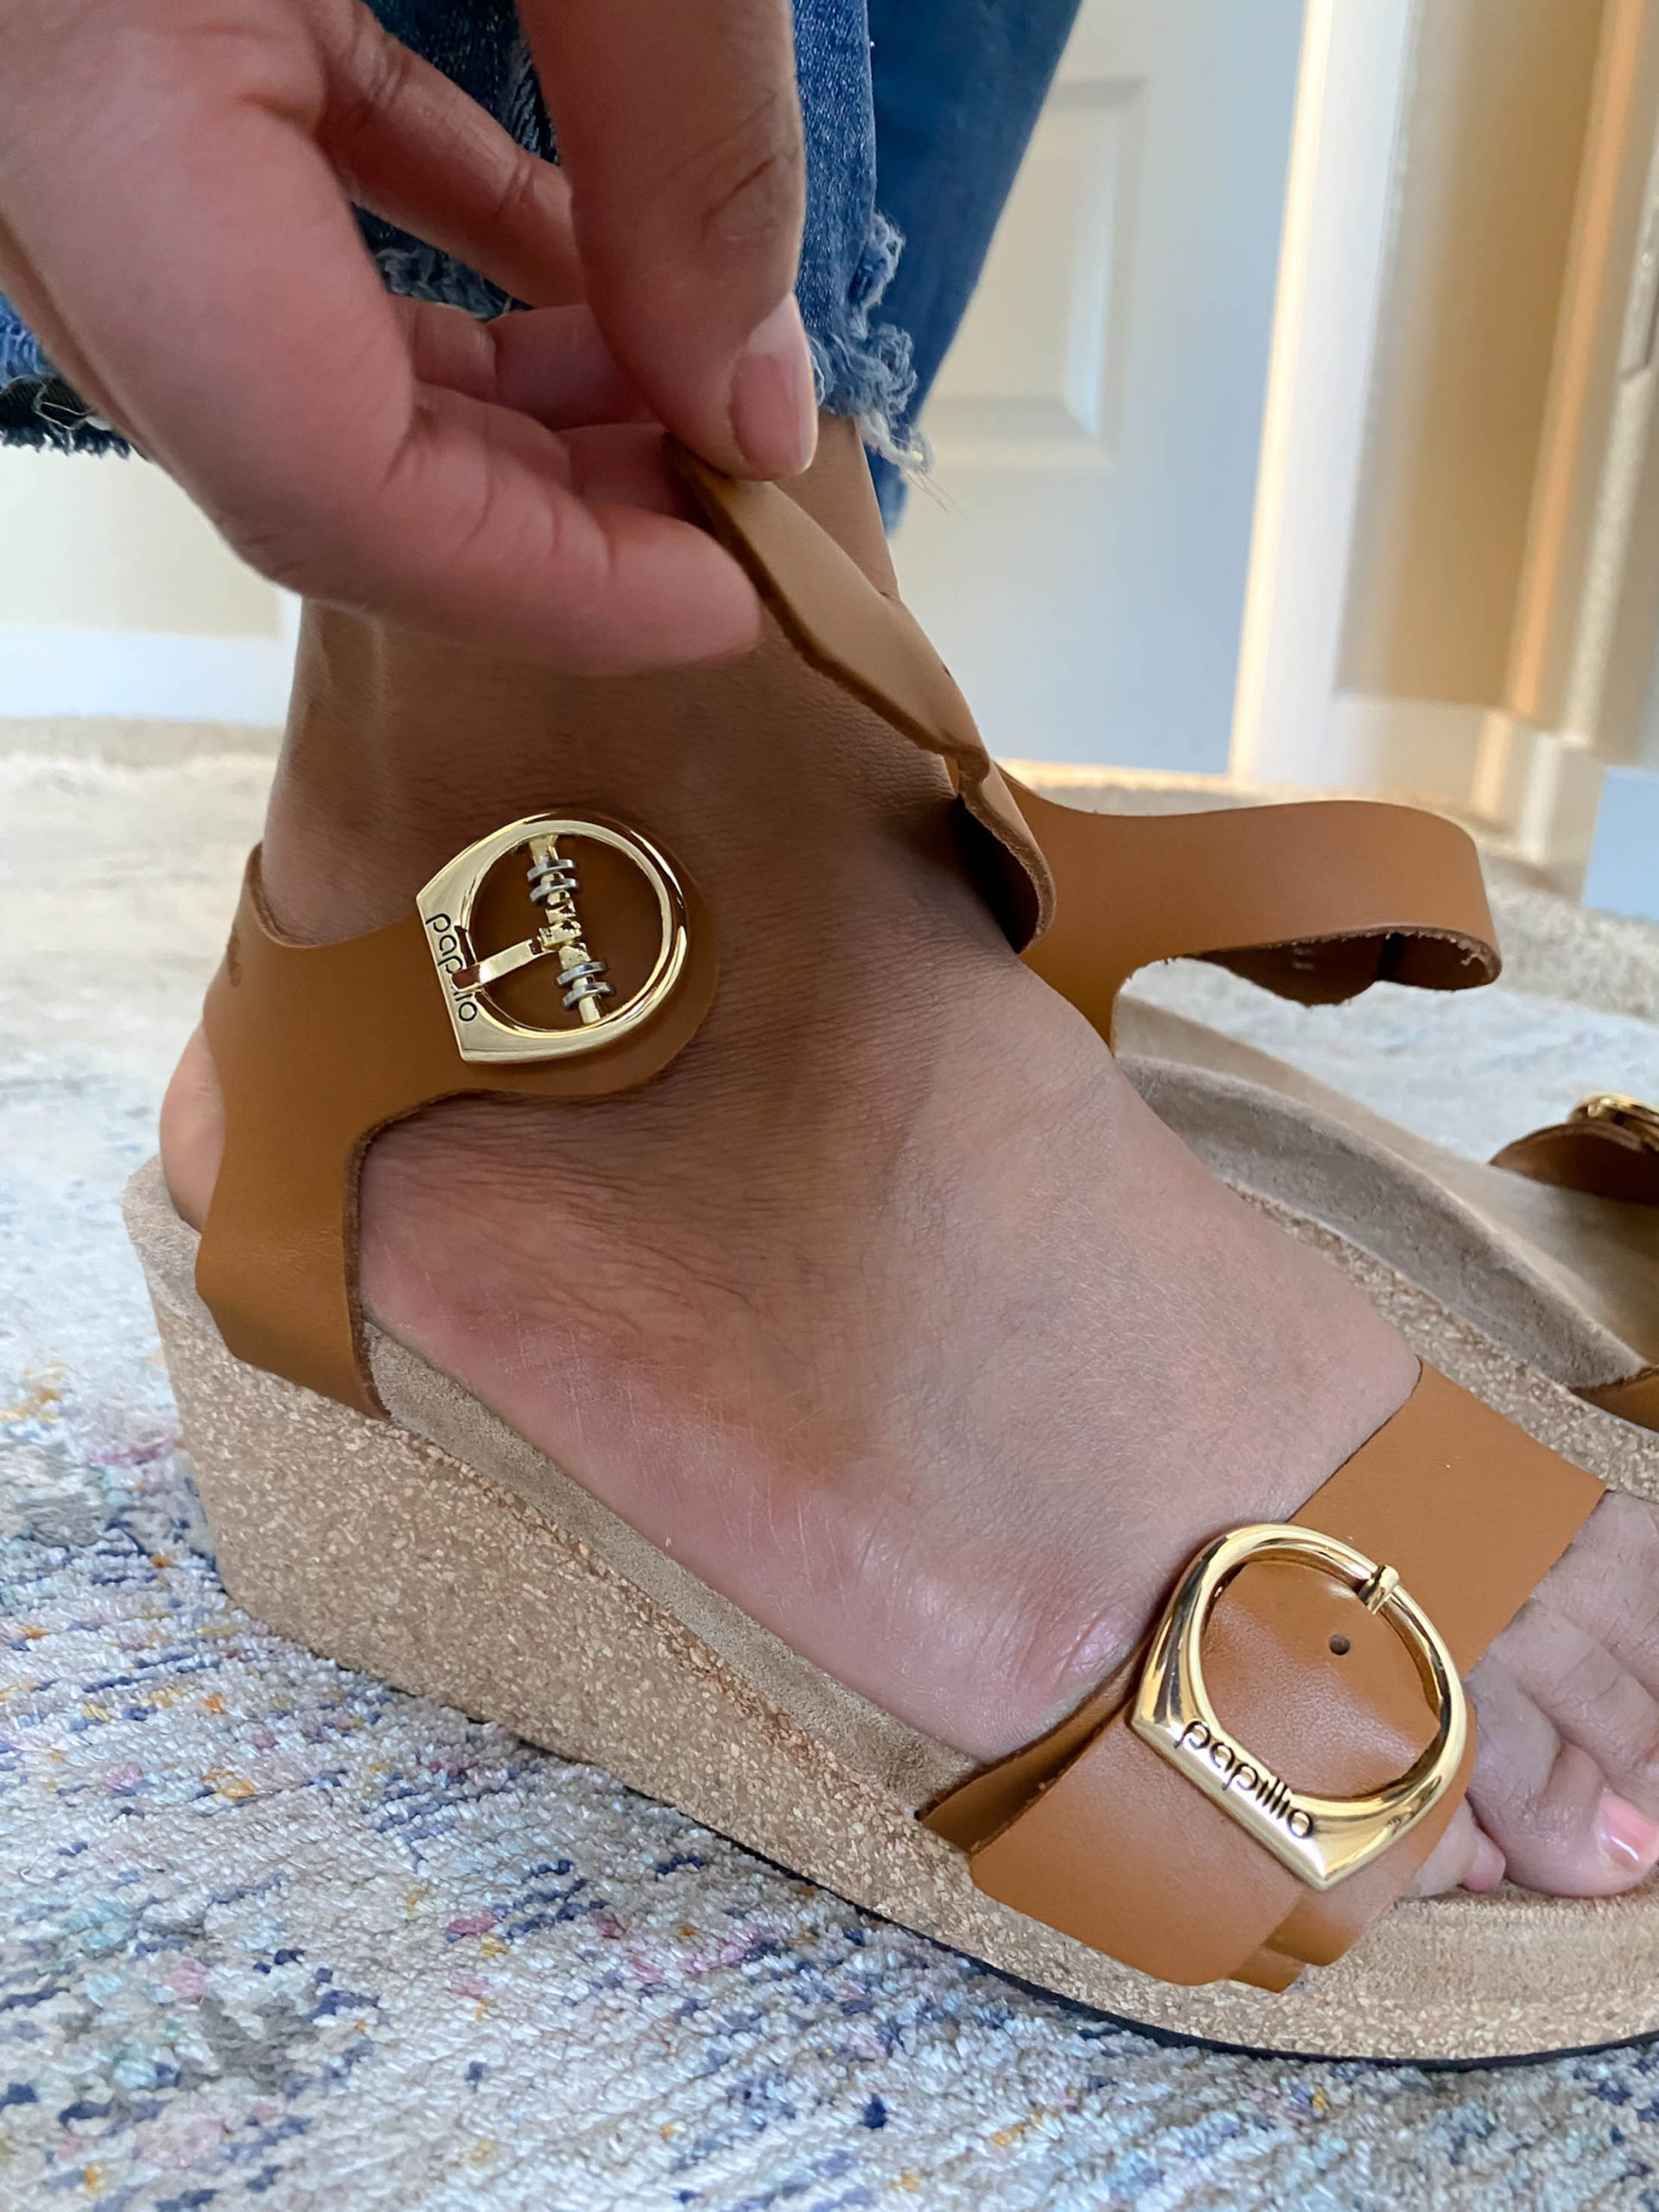 Sandals that are sexy & comfy? We found 6 pairs of Birkenstocks that all have varying levels of that va-va-voom sex appeal. Peep the try-on sesh.